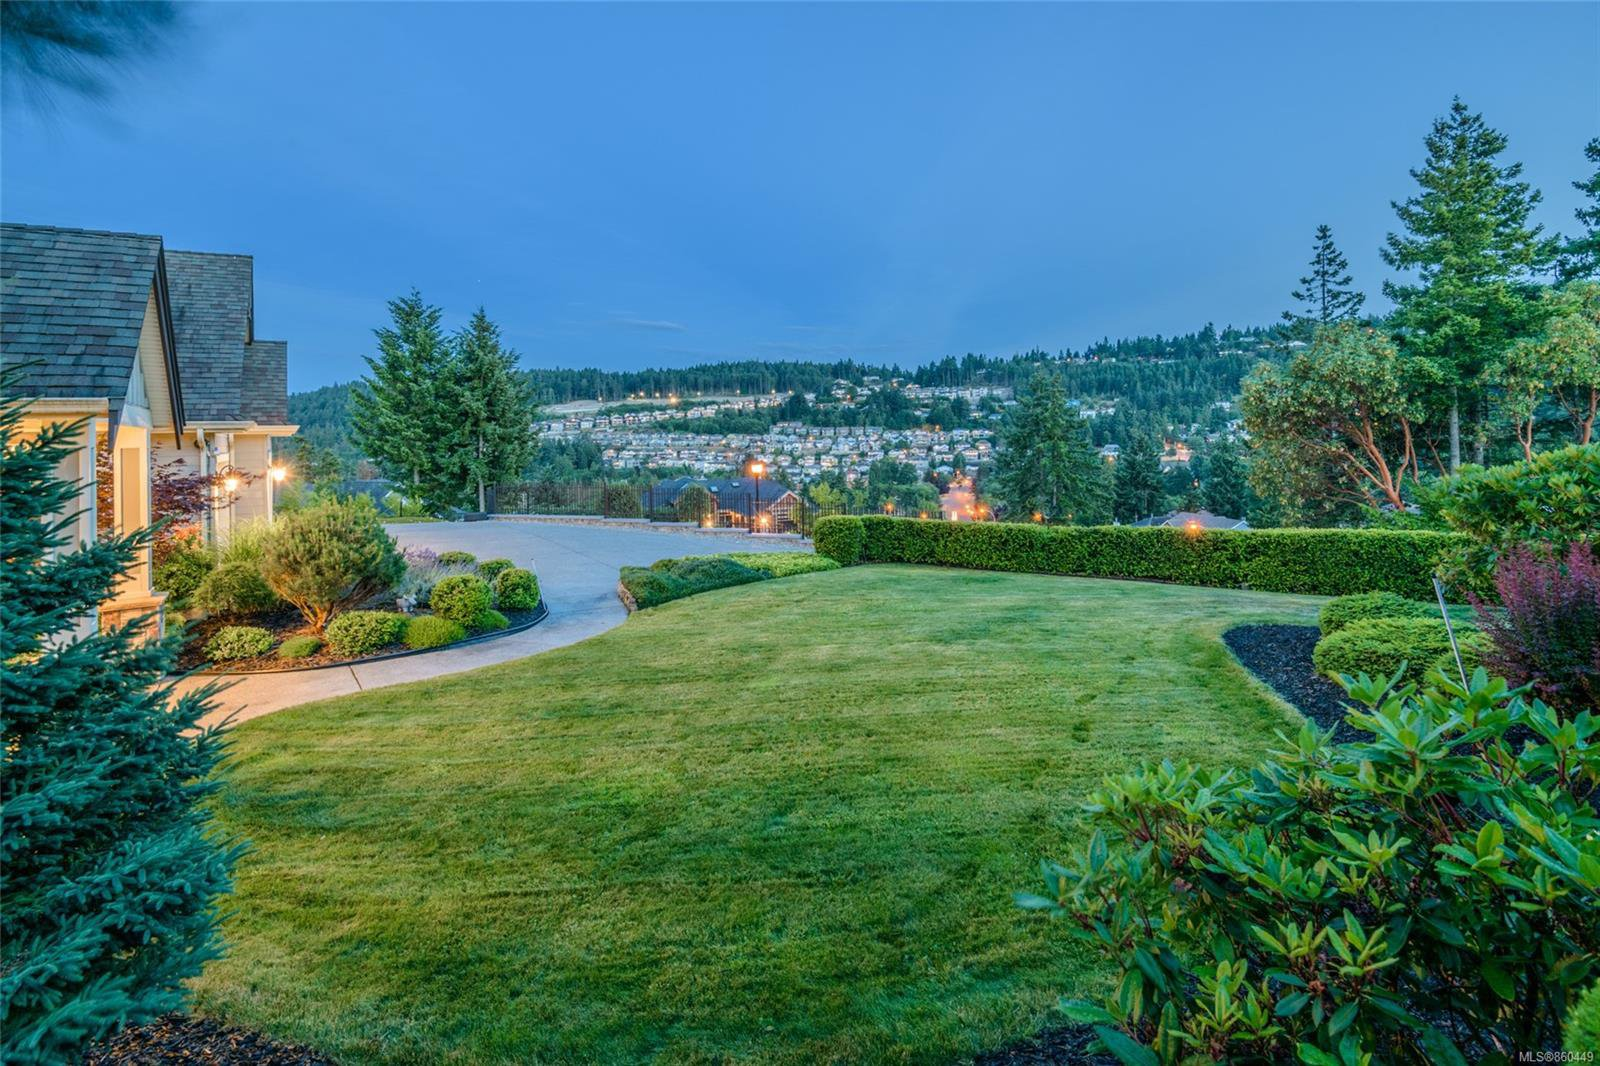 Photo 50: Photos: 5019 Hinrich View in : Na North Nanaimo House for sale (Nanaimo)  : MLS®# 860449